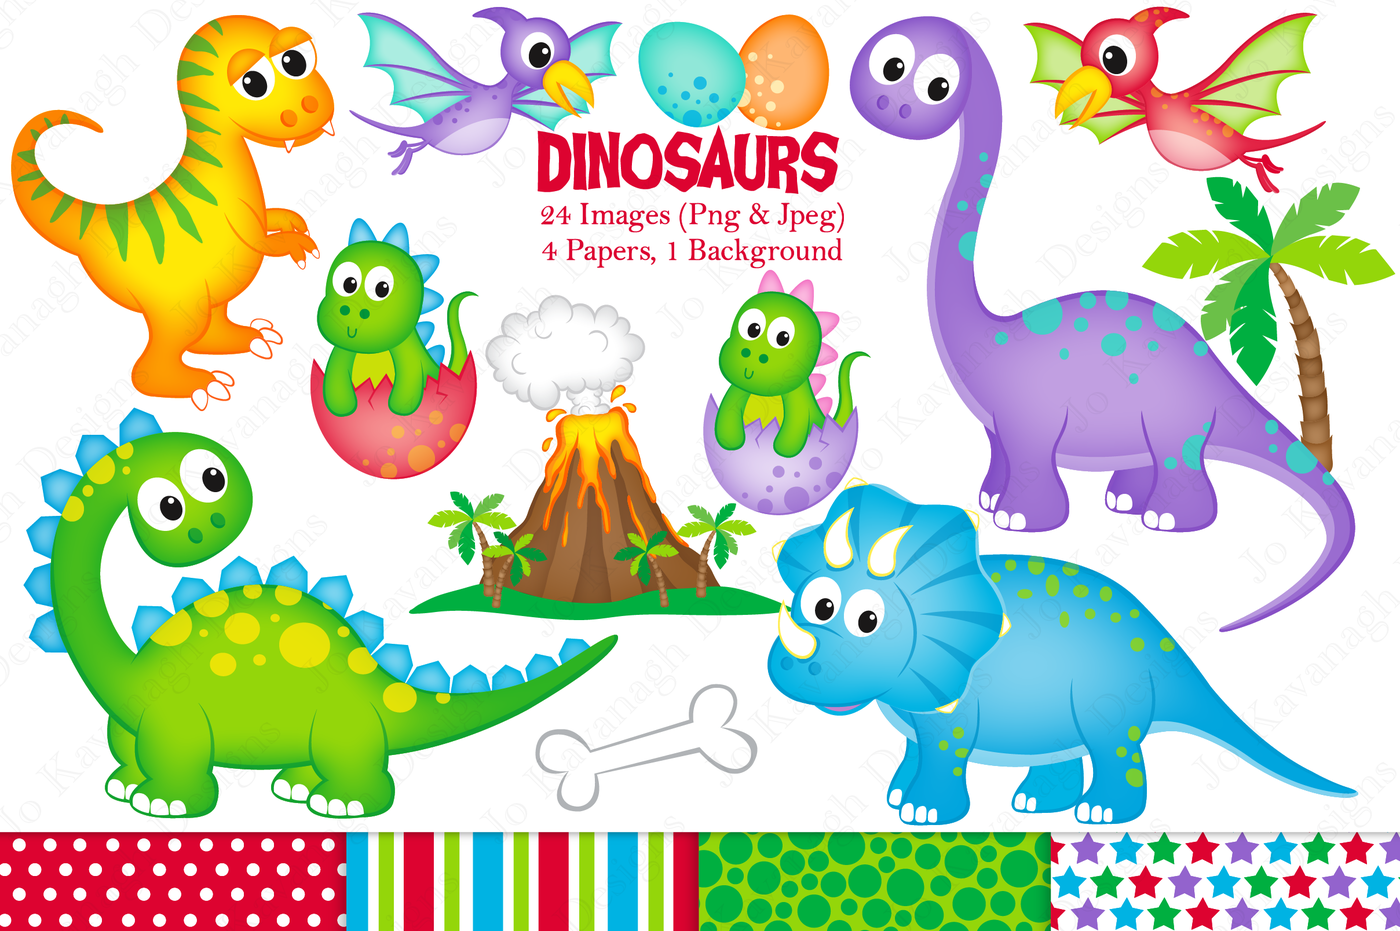 Dinosaur clipart, Dinosaur graphics & illustrations, Cute.